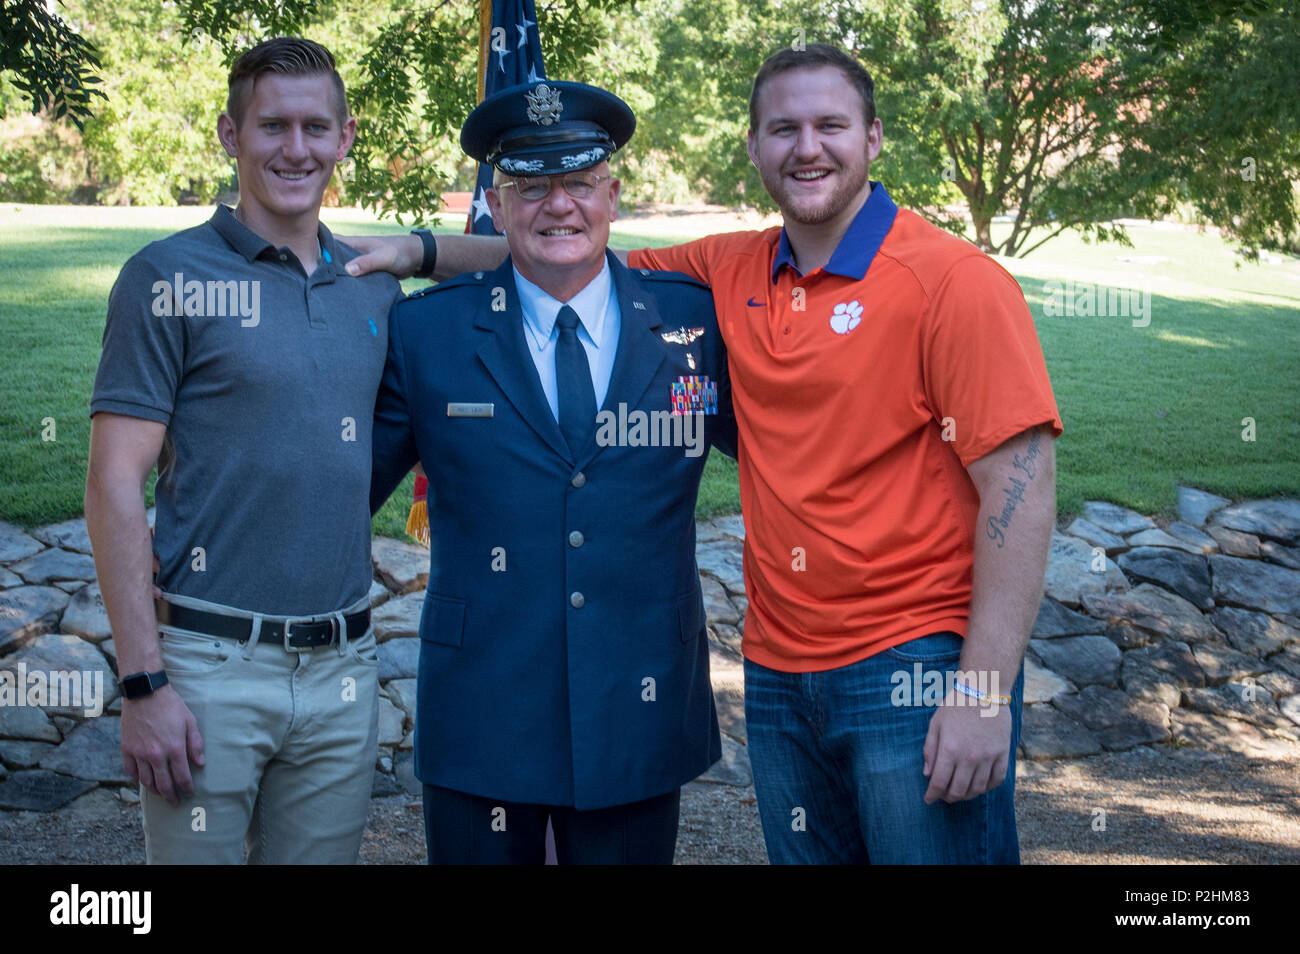 U.S. Air Force Lt. Col. Michael E. Mac Lain embraces his sons, Eric and Sean, after his promotion ceremony at the Scroll of Honor in Clemson University's Memorial Park, Sept. 30, 2016. Mac Lain is the Aeromedical Operations Flight Commander for the 43rd  Aeromedical Evacuation Squadron, Pope Army Airfield, Fort Bragg, NC. He directs daily flight operations for 60 assigned personnel, and provides medical care as a Flight Nurse on aeromedical evacuation missions. Mac Lain has deployed nine times to combat zones and successfully aero medically evacuated over 700 of the most ill and severely injur - Stock Image